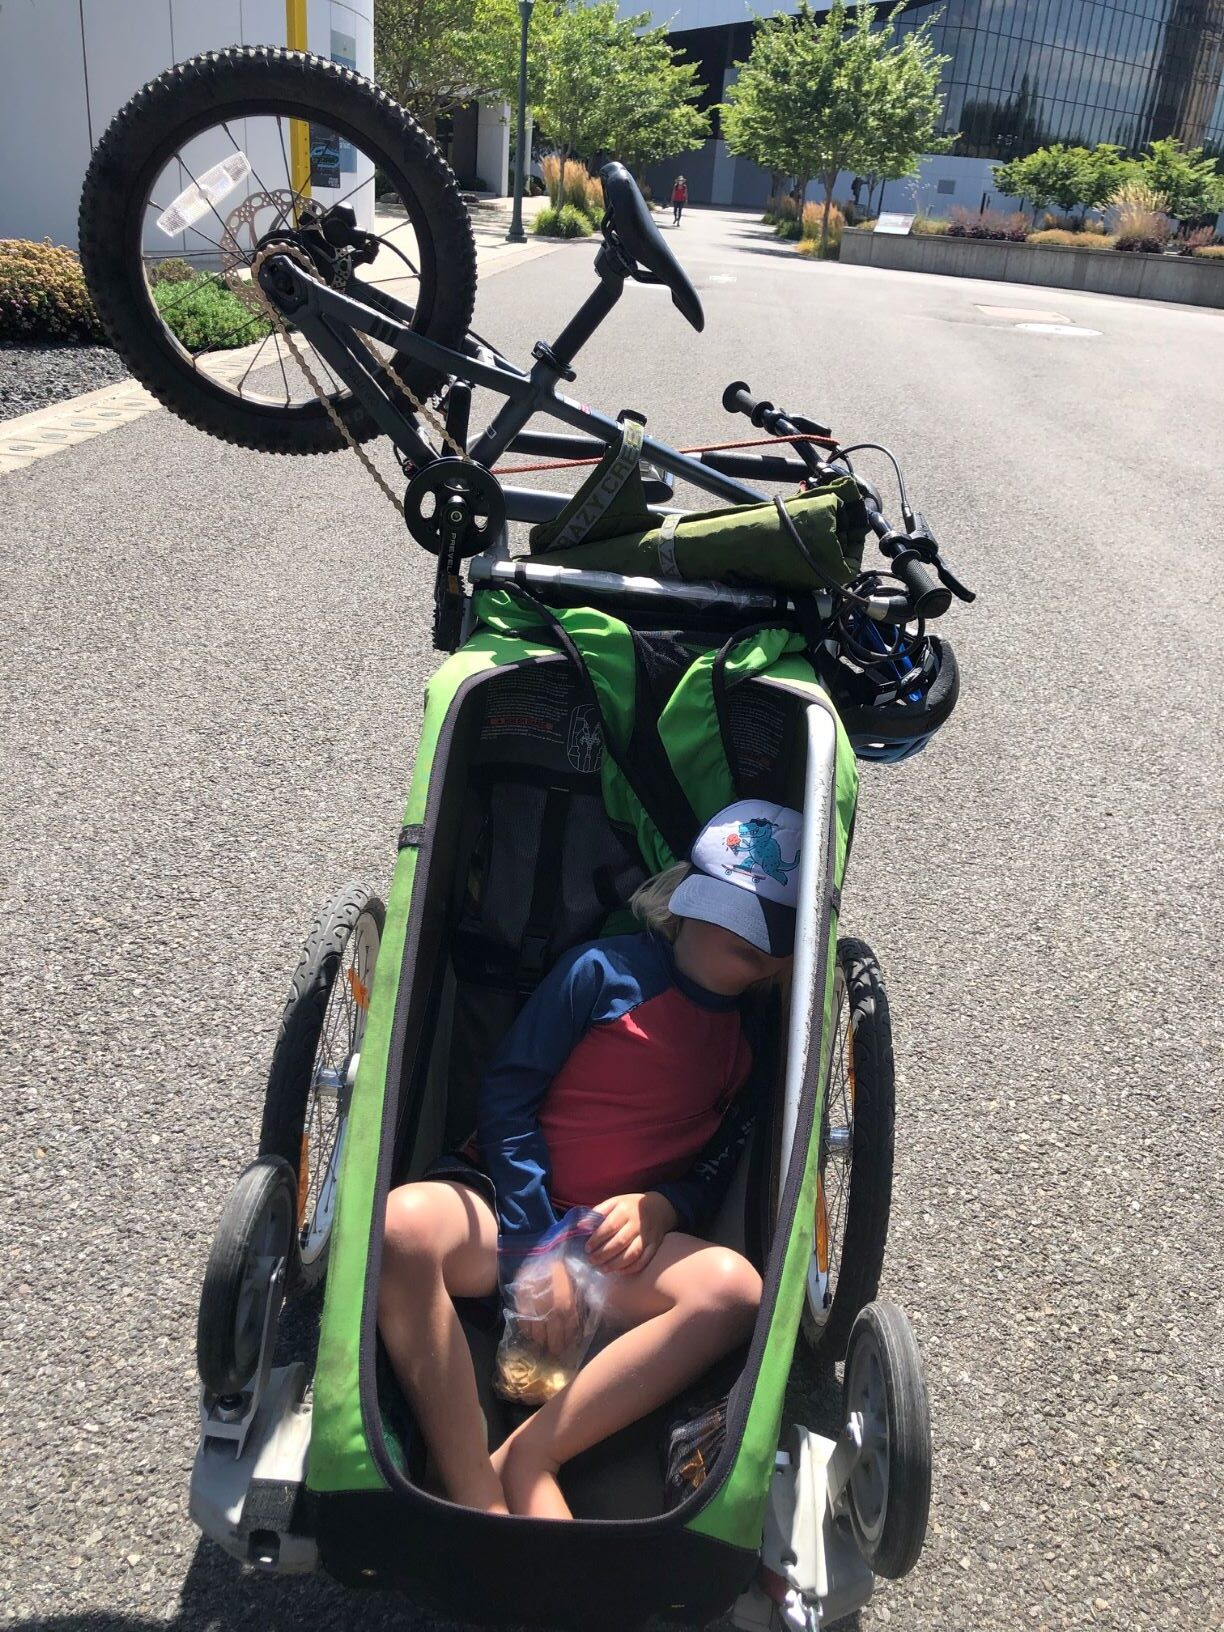 Child napping in a green bicycle trailer with child's bike attached to the back of trailer.